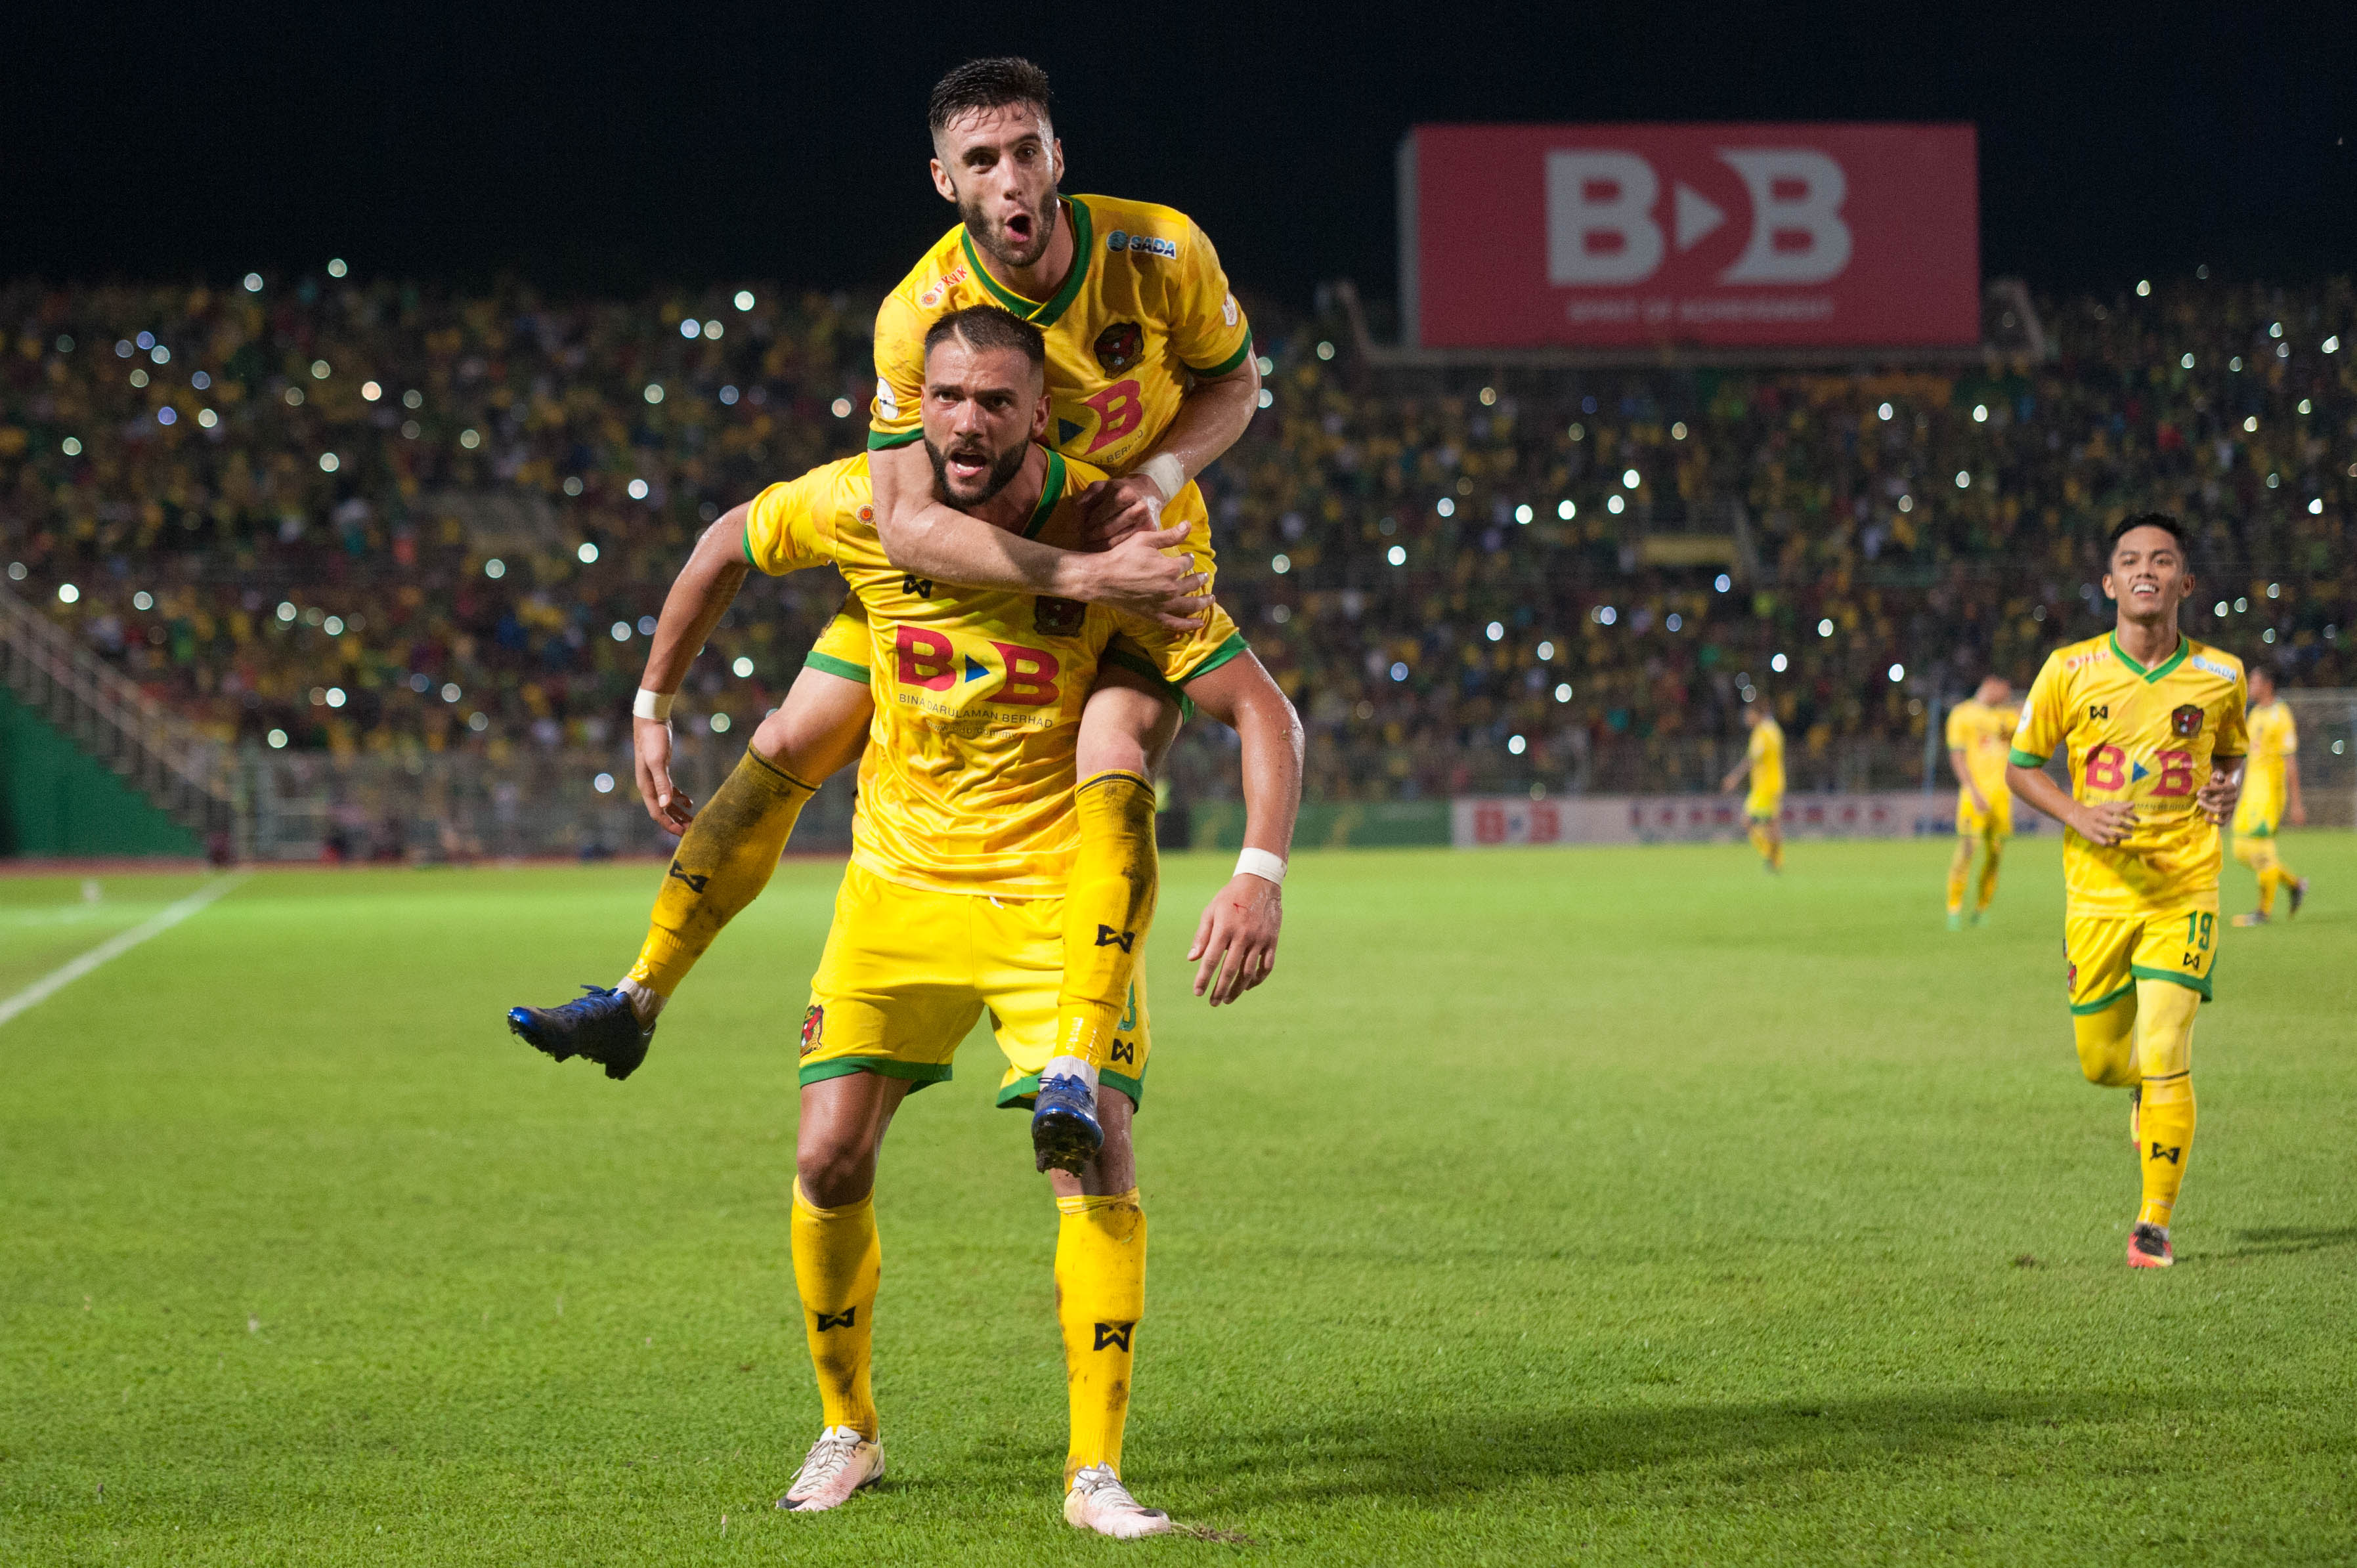 Thiago Augusto celebrates with Liridon Krasniqi after the latter scored